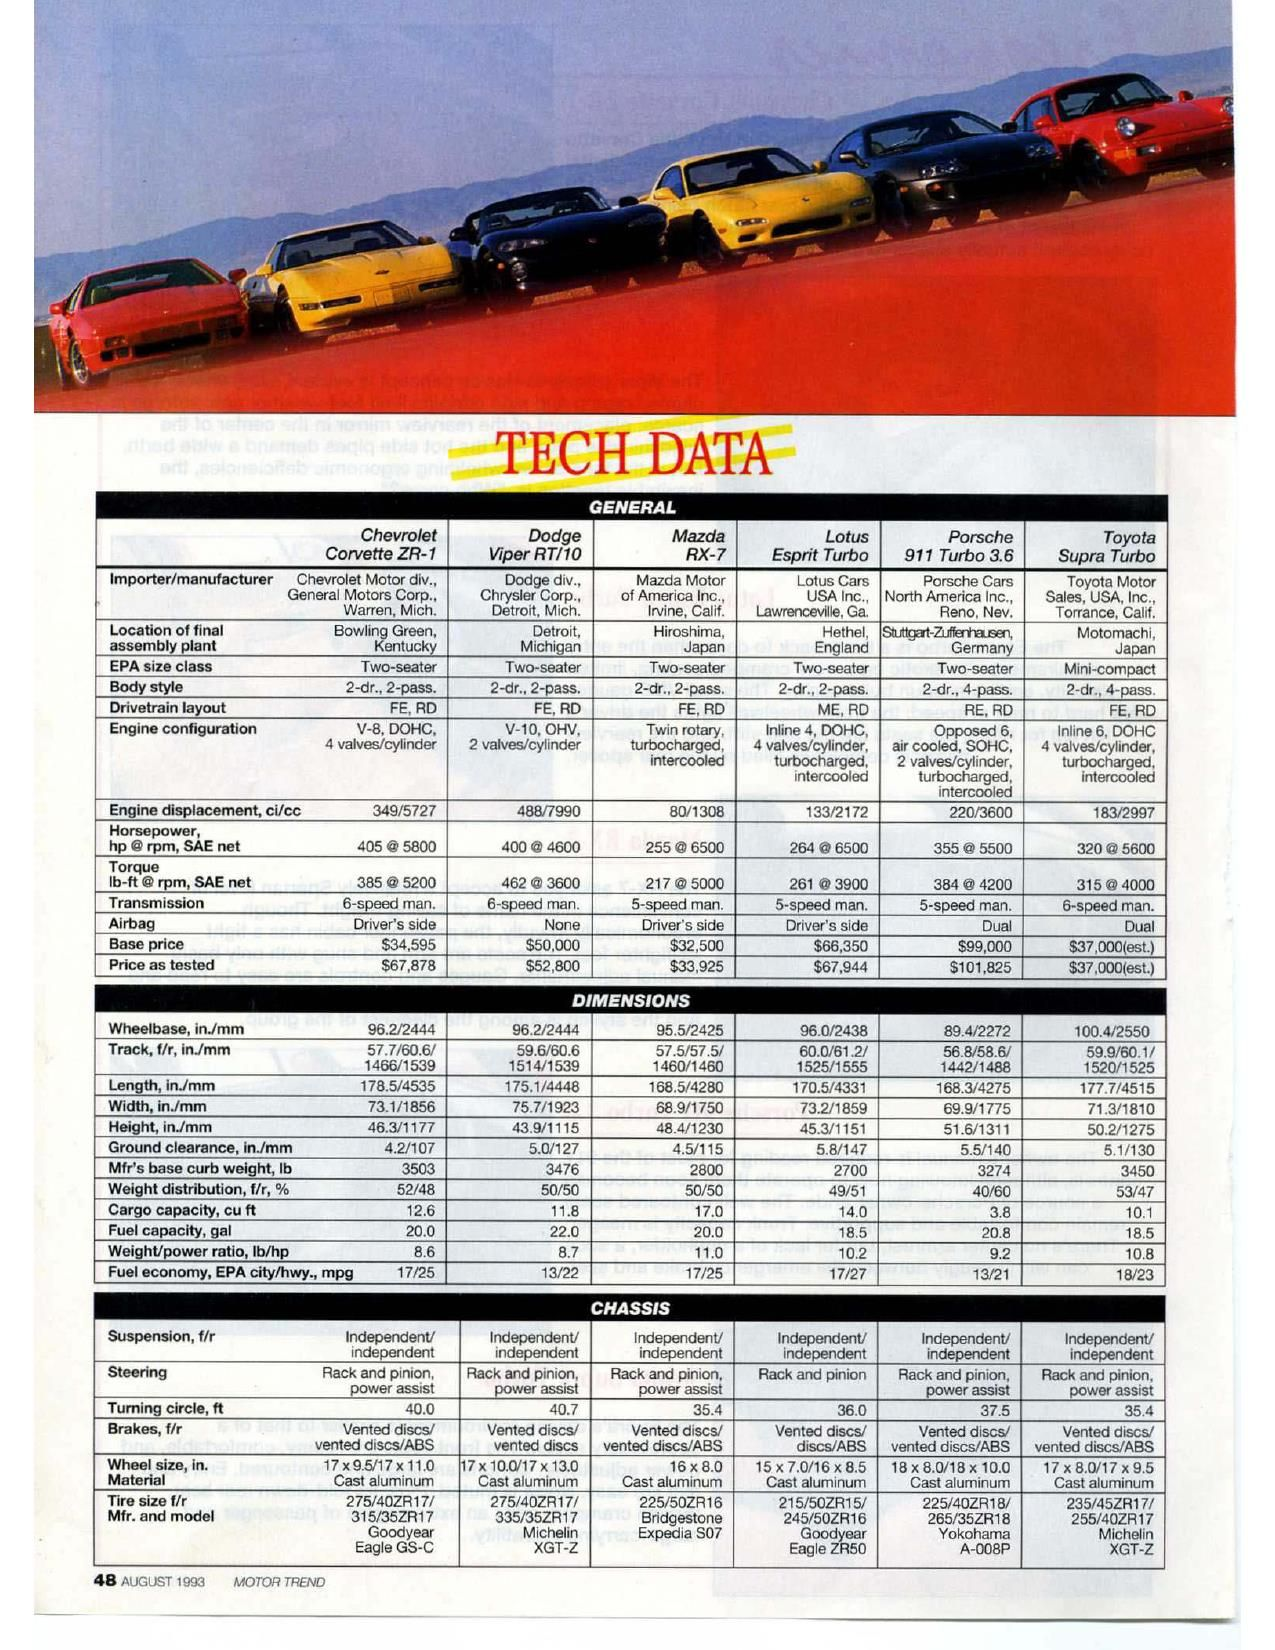 Porsche 964 Turbo 3 6 Vs Chevrolet Corvette Zr1 Vs Dodge Viper Vs